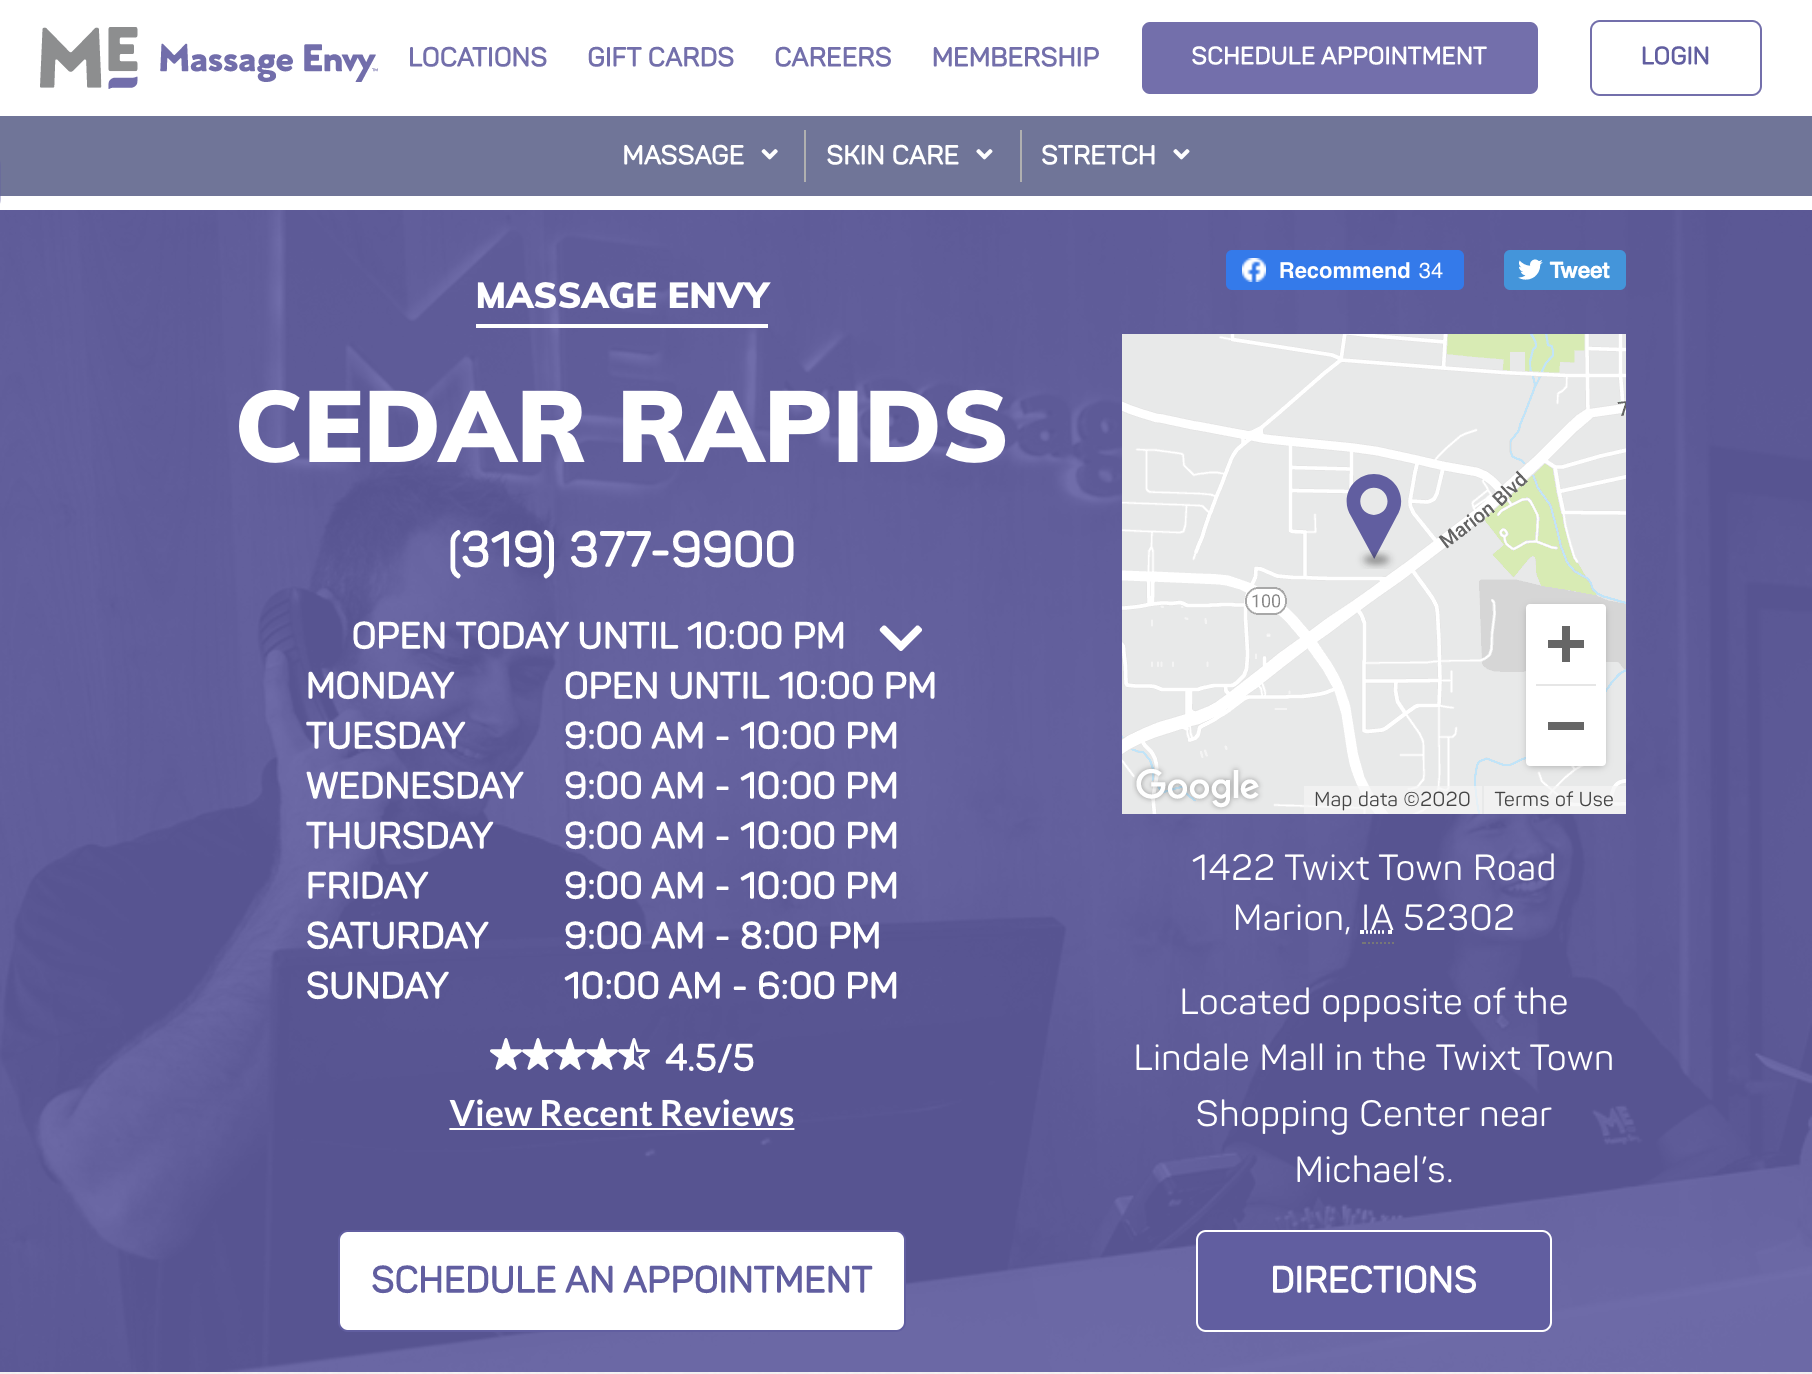 Massage Envy Location Page